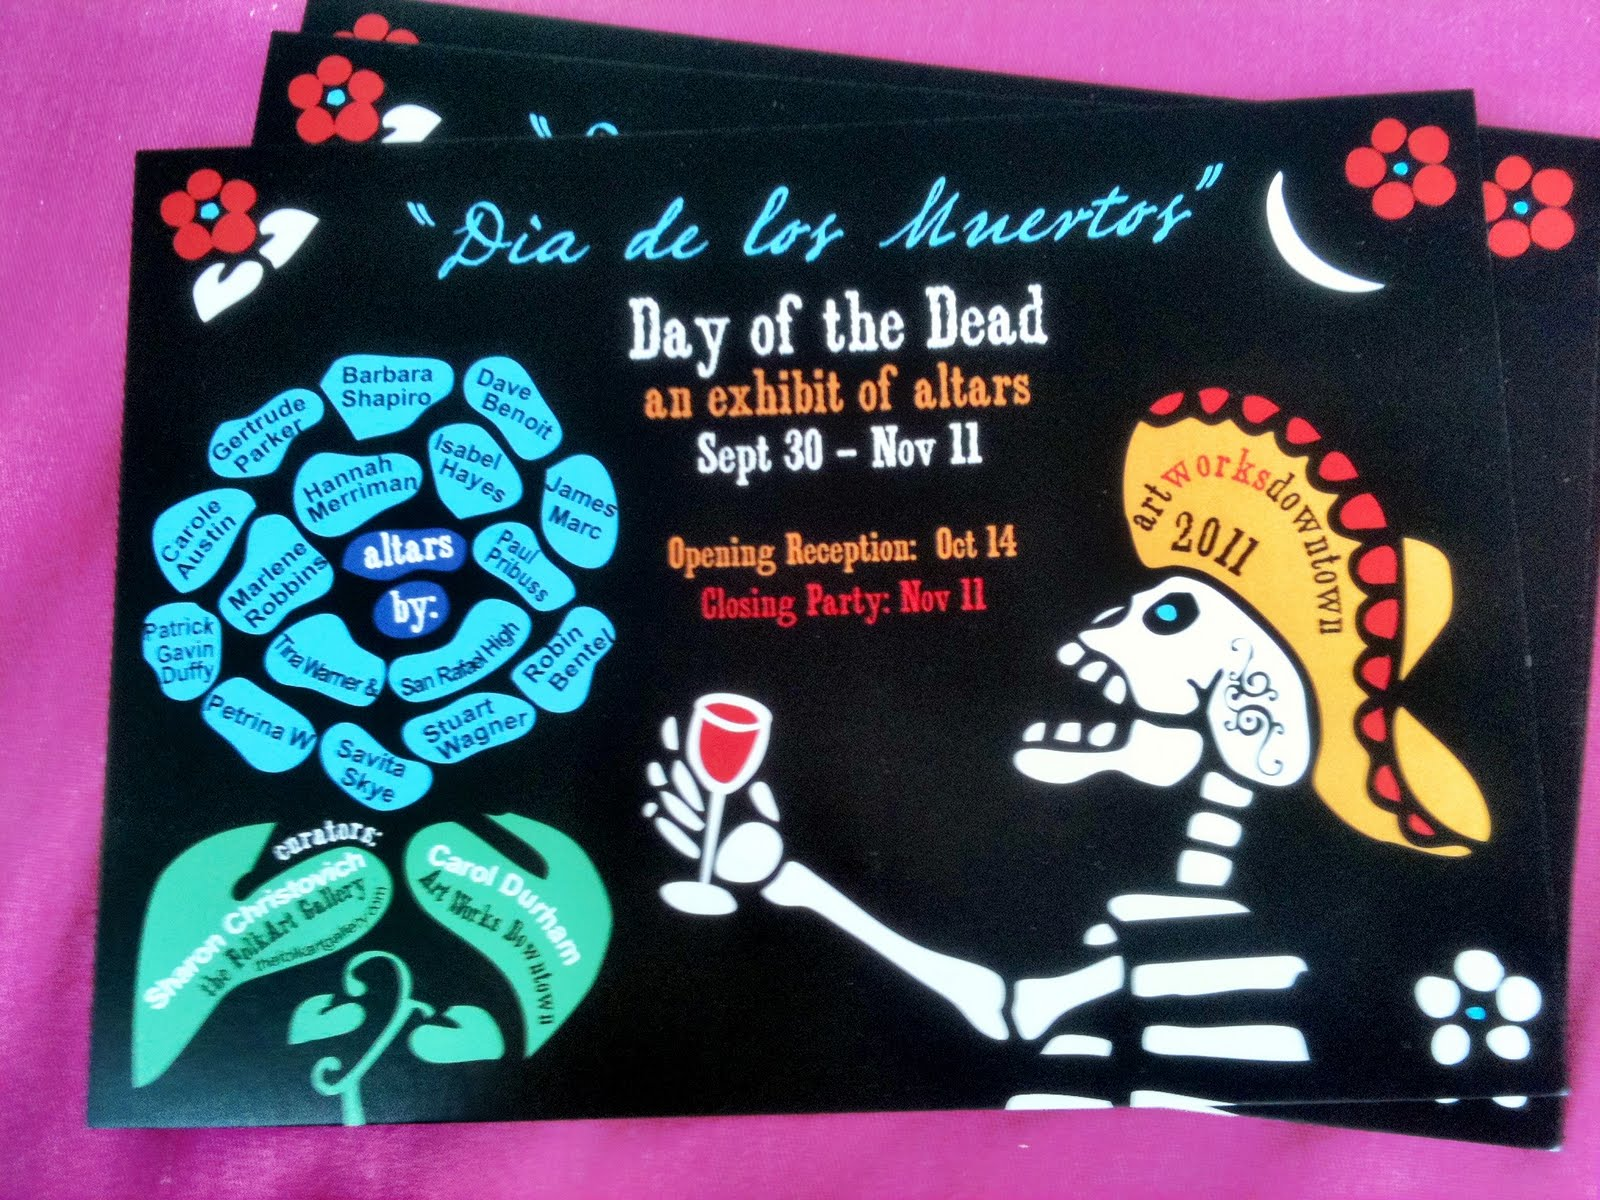 68 QUOTES ON THE DAY OF THE DEAD, THE DEAD OF THE QUOTES DAY ON